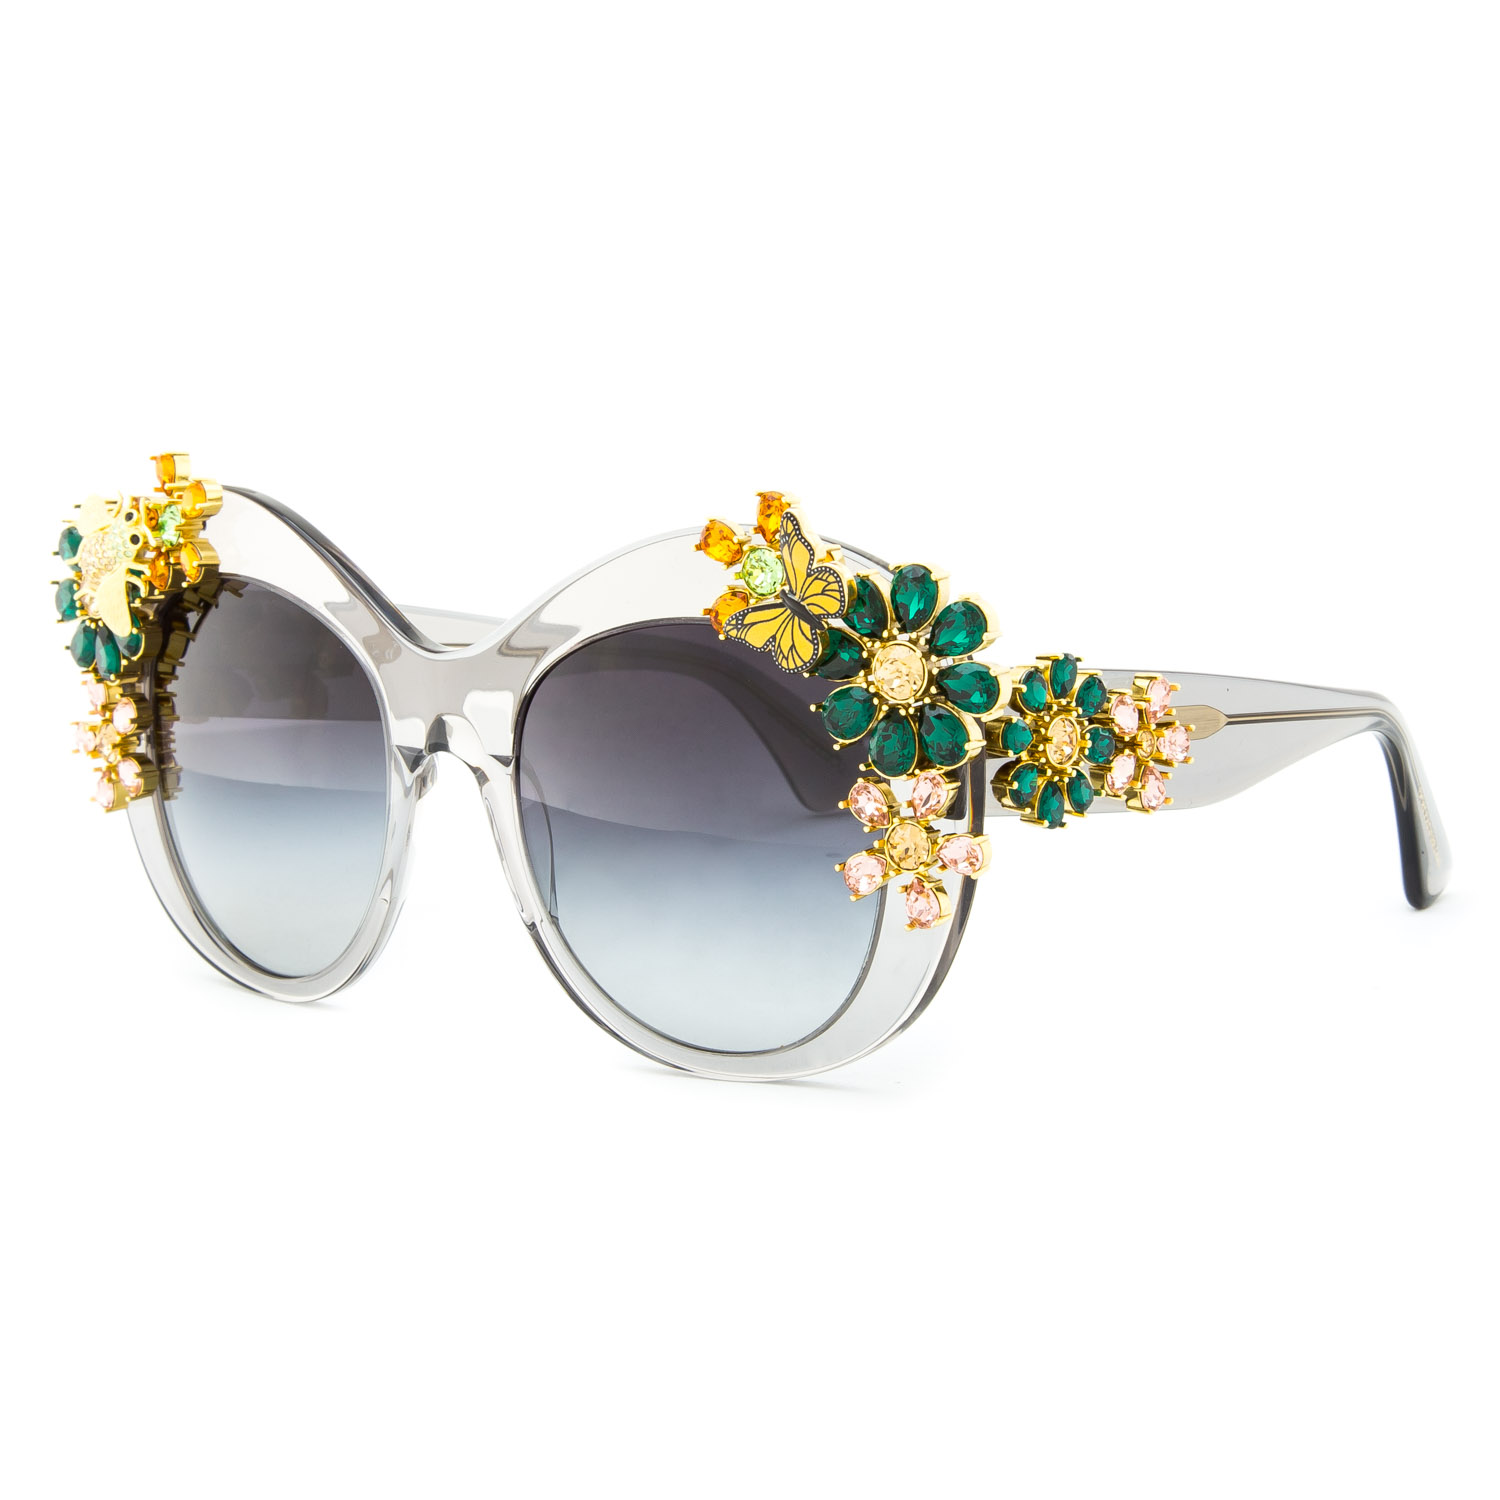 dolce and gabbana gold flower sunglasses. Black Bedroom Furniture Sets. Home Design Ideas